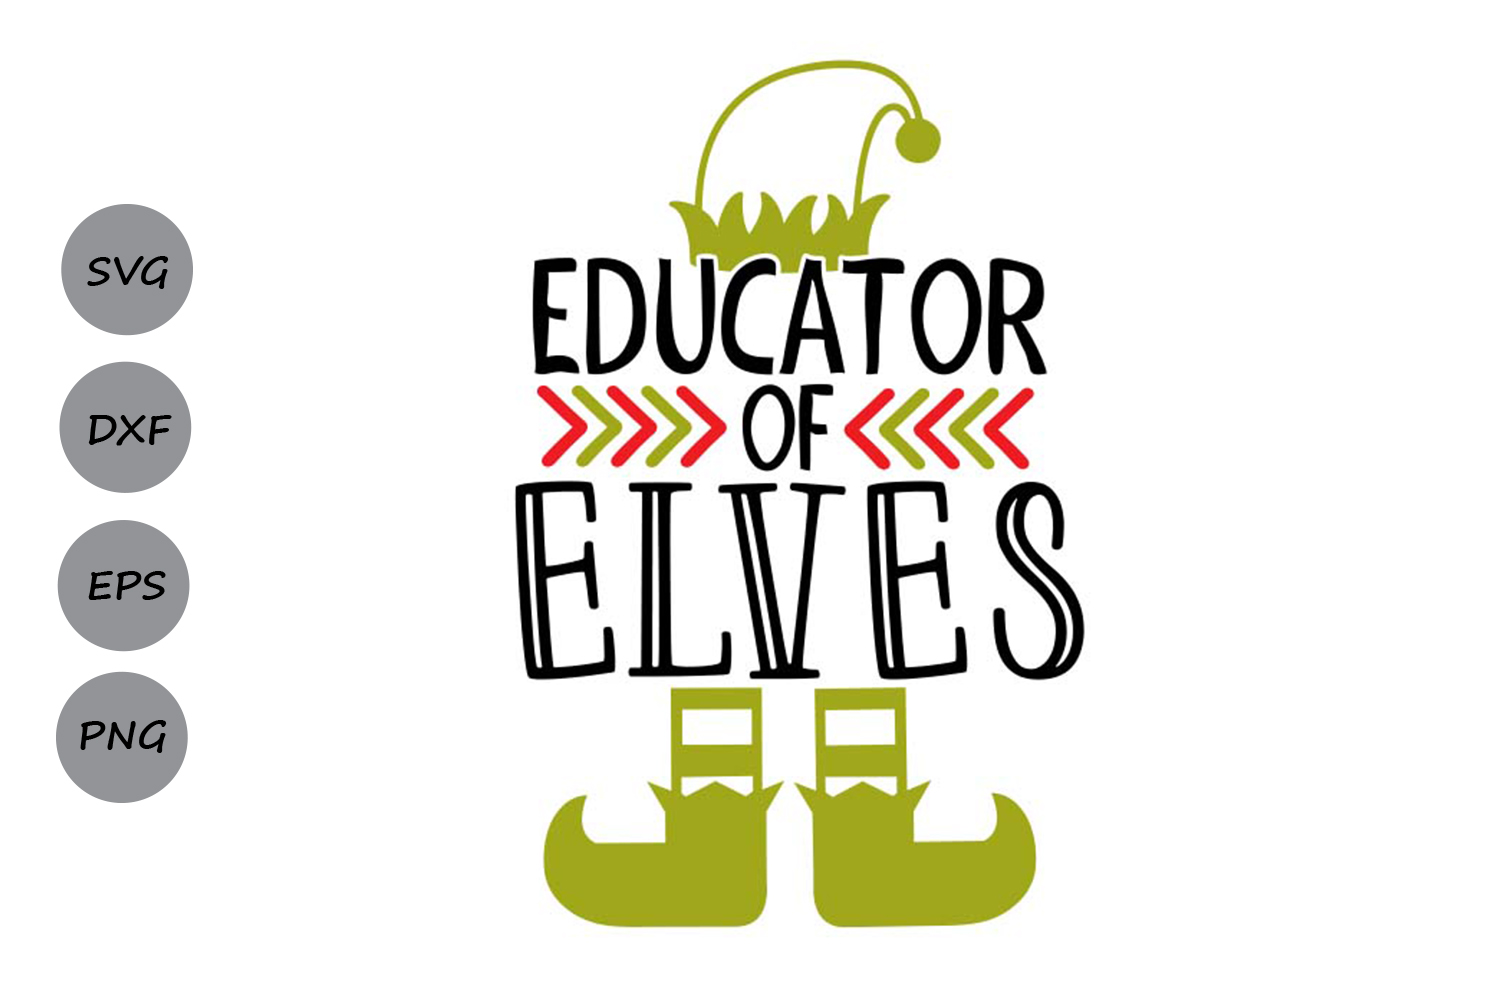 Download Free Educator Of Elves Graphic By Cosmosfineart Creative Fabrica for Cricut Explore, Silhouette and other cutting machines.